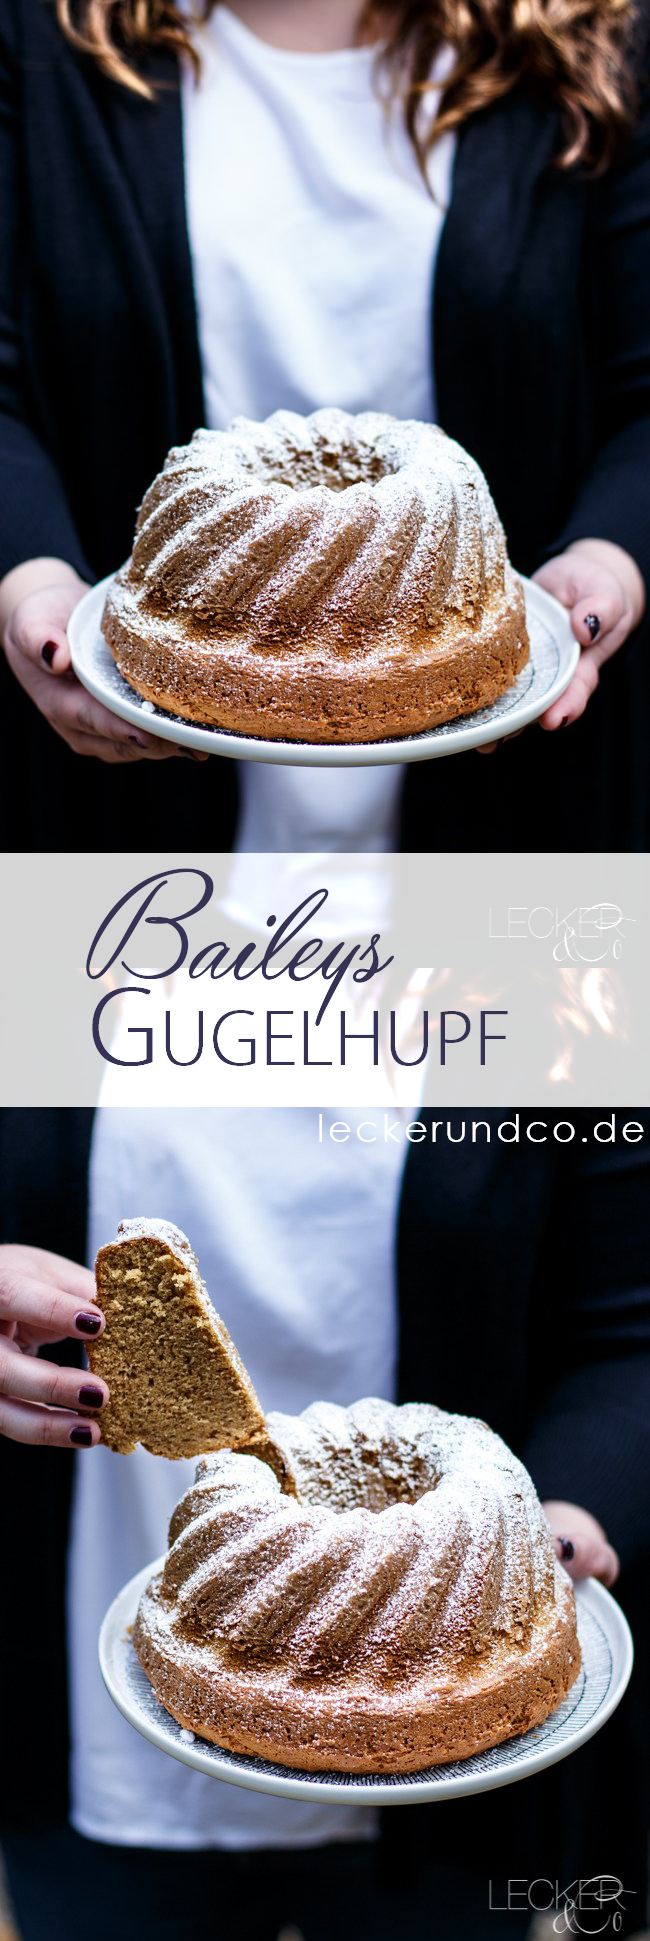 baileys gugelhupf blogger winter wohlf hl k che gugelhupf kuchen und backen. Black Bedroom Furniture Sets. Home Design Ideas